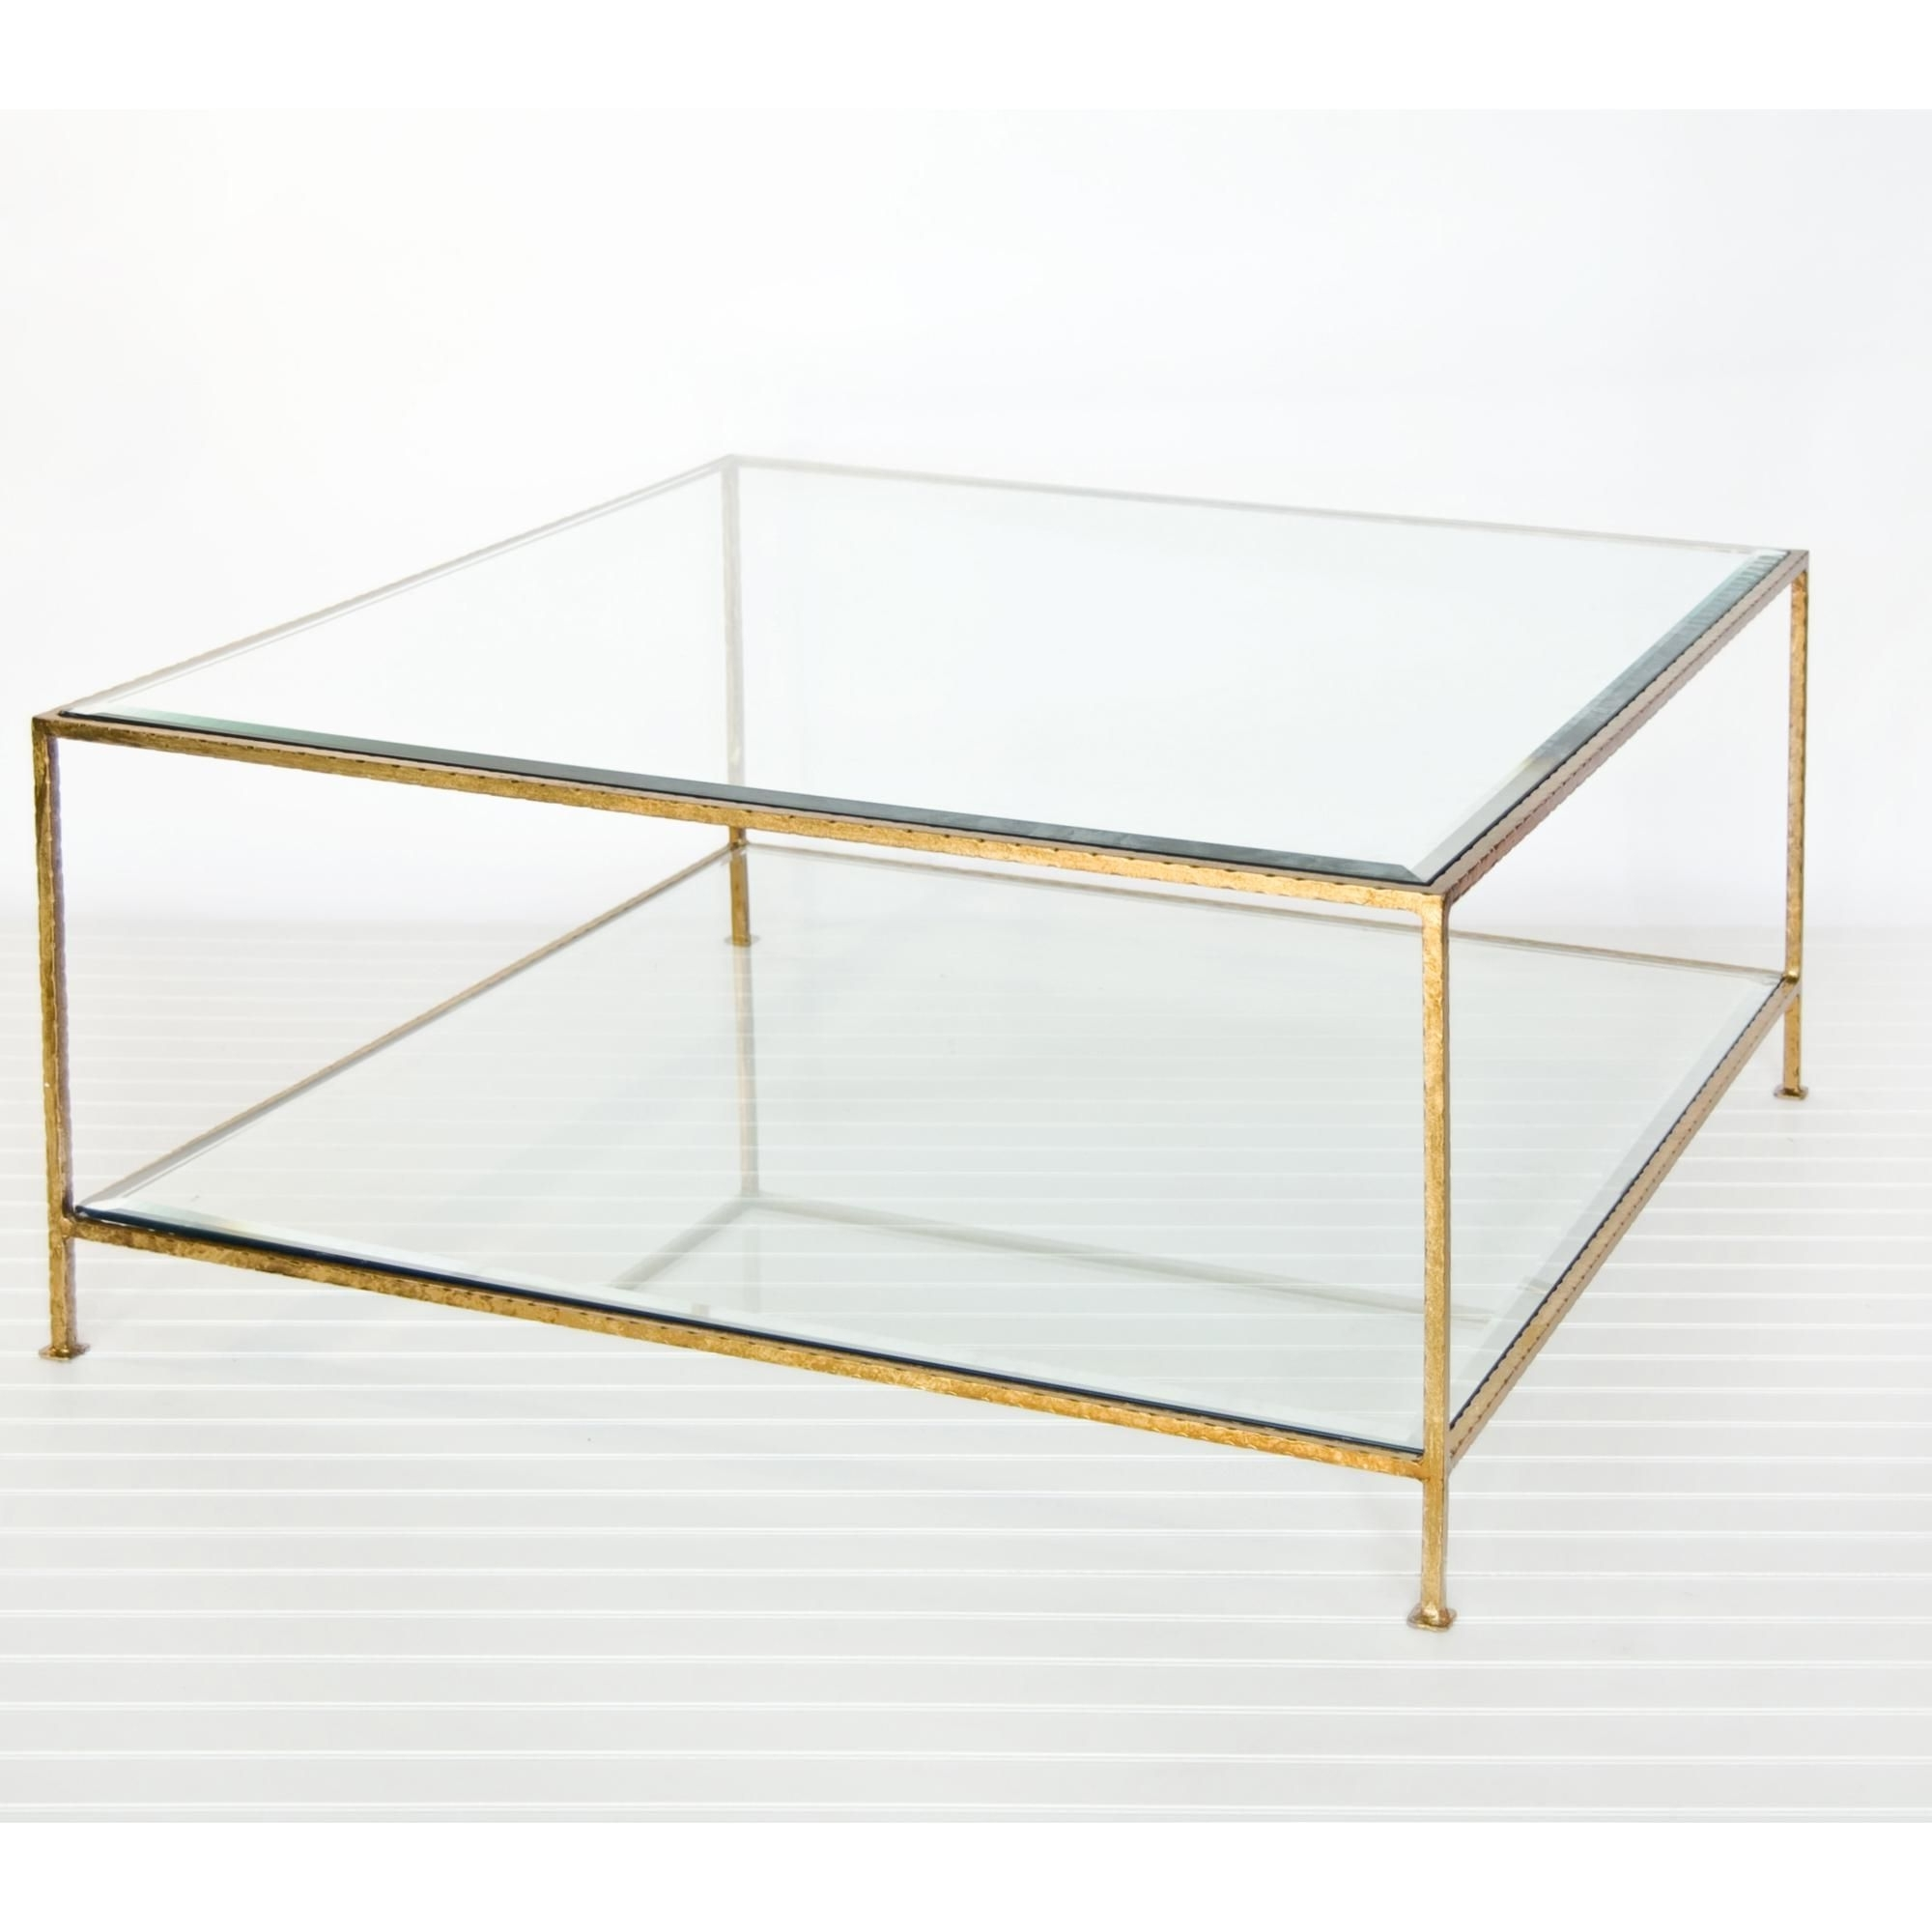 Worlds Away Quadro Square Coffee Table With Beveled Glass – Hammered Inside Most Recent Rectangular Brass Finish And Glass Coffee Tables (View 11 of 20)